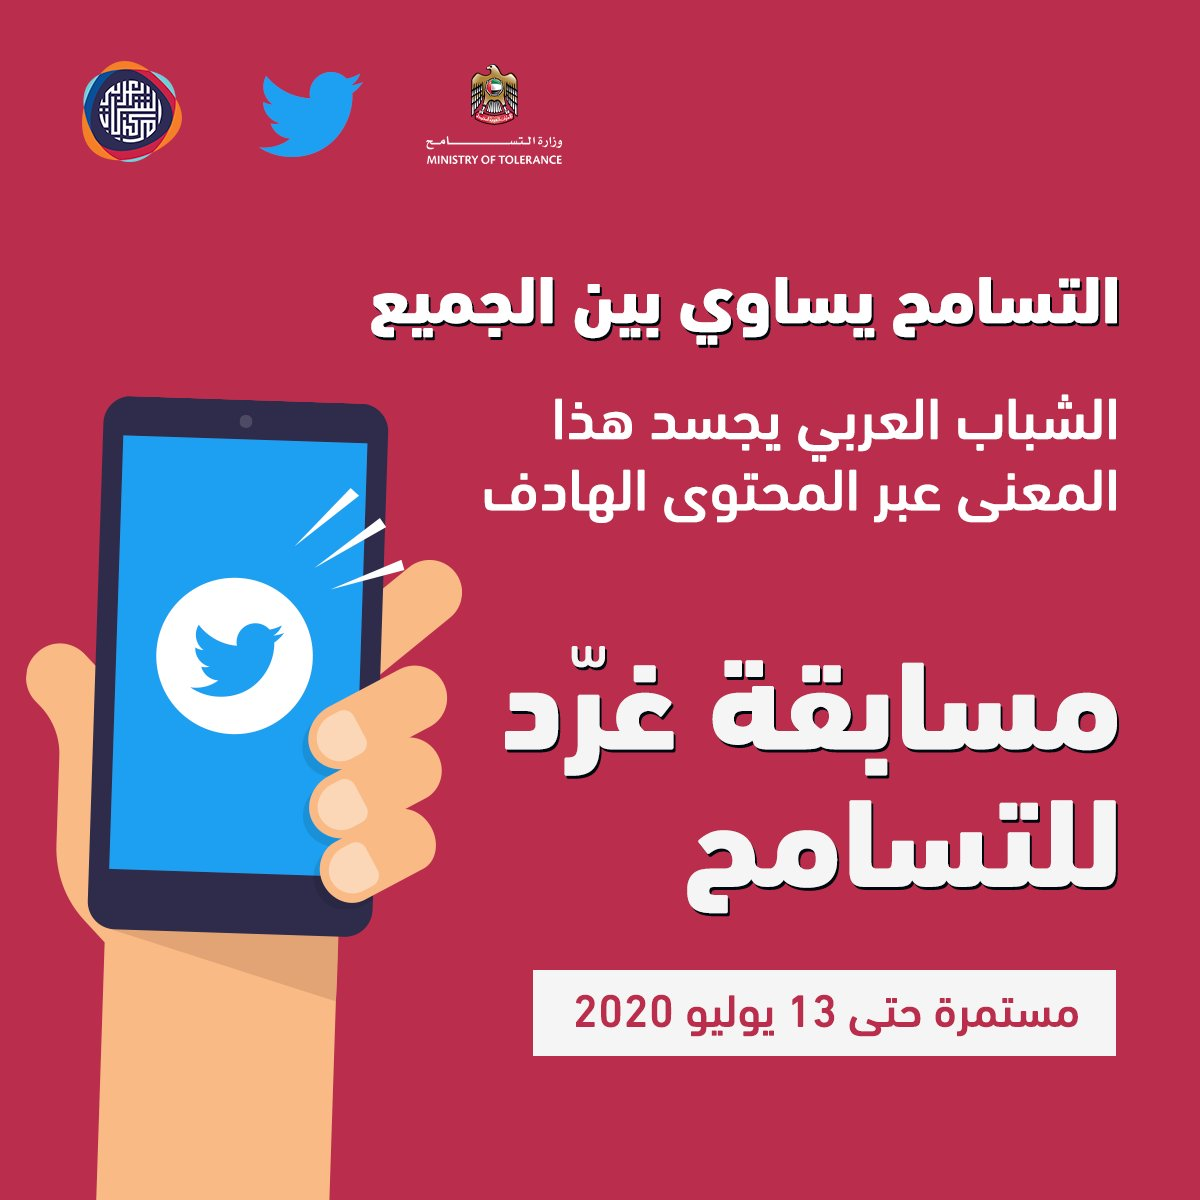 #TweetForTolerance aims at spreading the values of tolerance & humanity. Launched by AYC, MOT & Twitter, we're on the lookout for some of the next tolerance pioneers among the Arab Youth. Join our competition until the July 13th & help spread the values of tolerance. https://t.co/TLkjxnQnjs